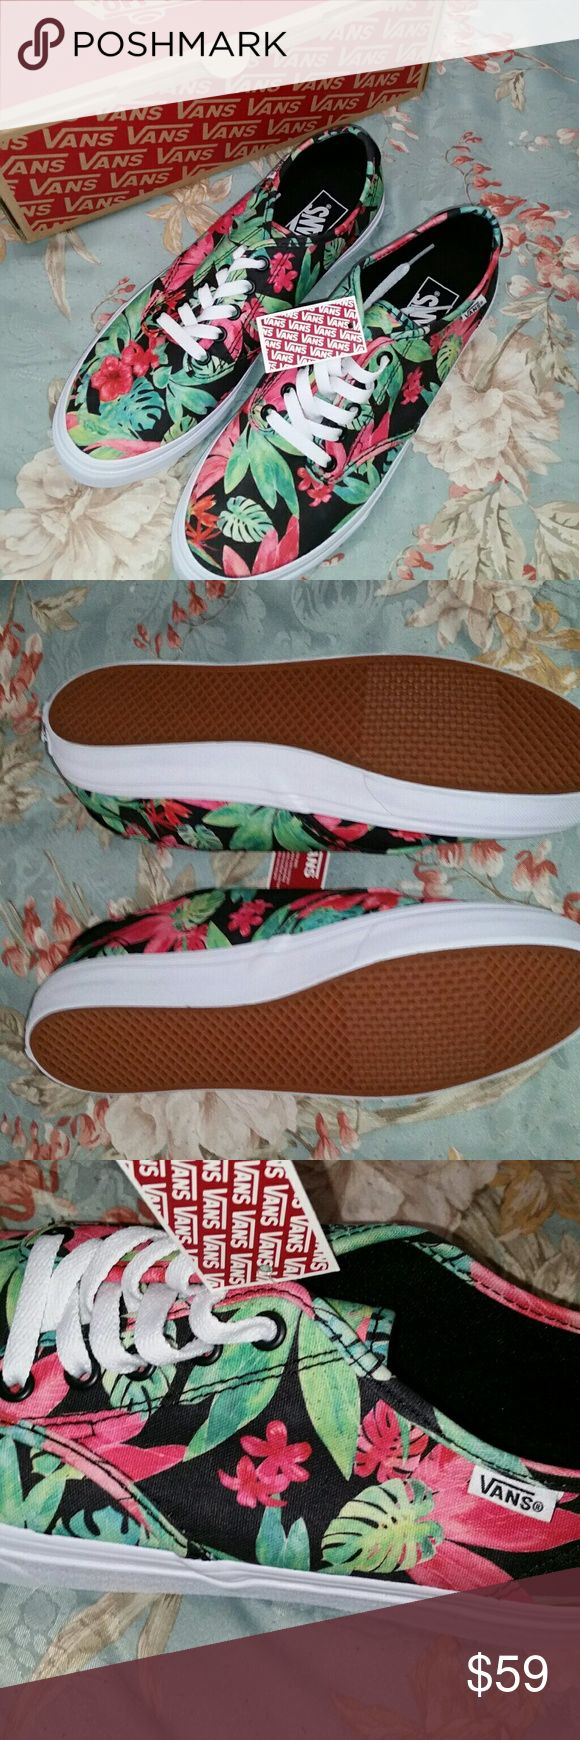 """***BRAND NEW*** Vans (Tropical Floral pattern) Never before worn """"Camden Tropical Floral Vans"""" ... width: M ... size: 9.5 Women's U.S. Buy more than 1 item from me ⚌ discount OR freebies Will ship multiple purchases together, just ask Don't like the price? Msg me Vans Shoes Sneakers"""